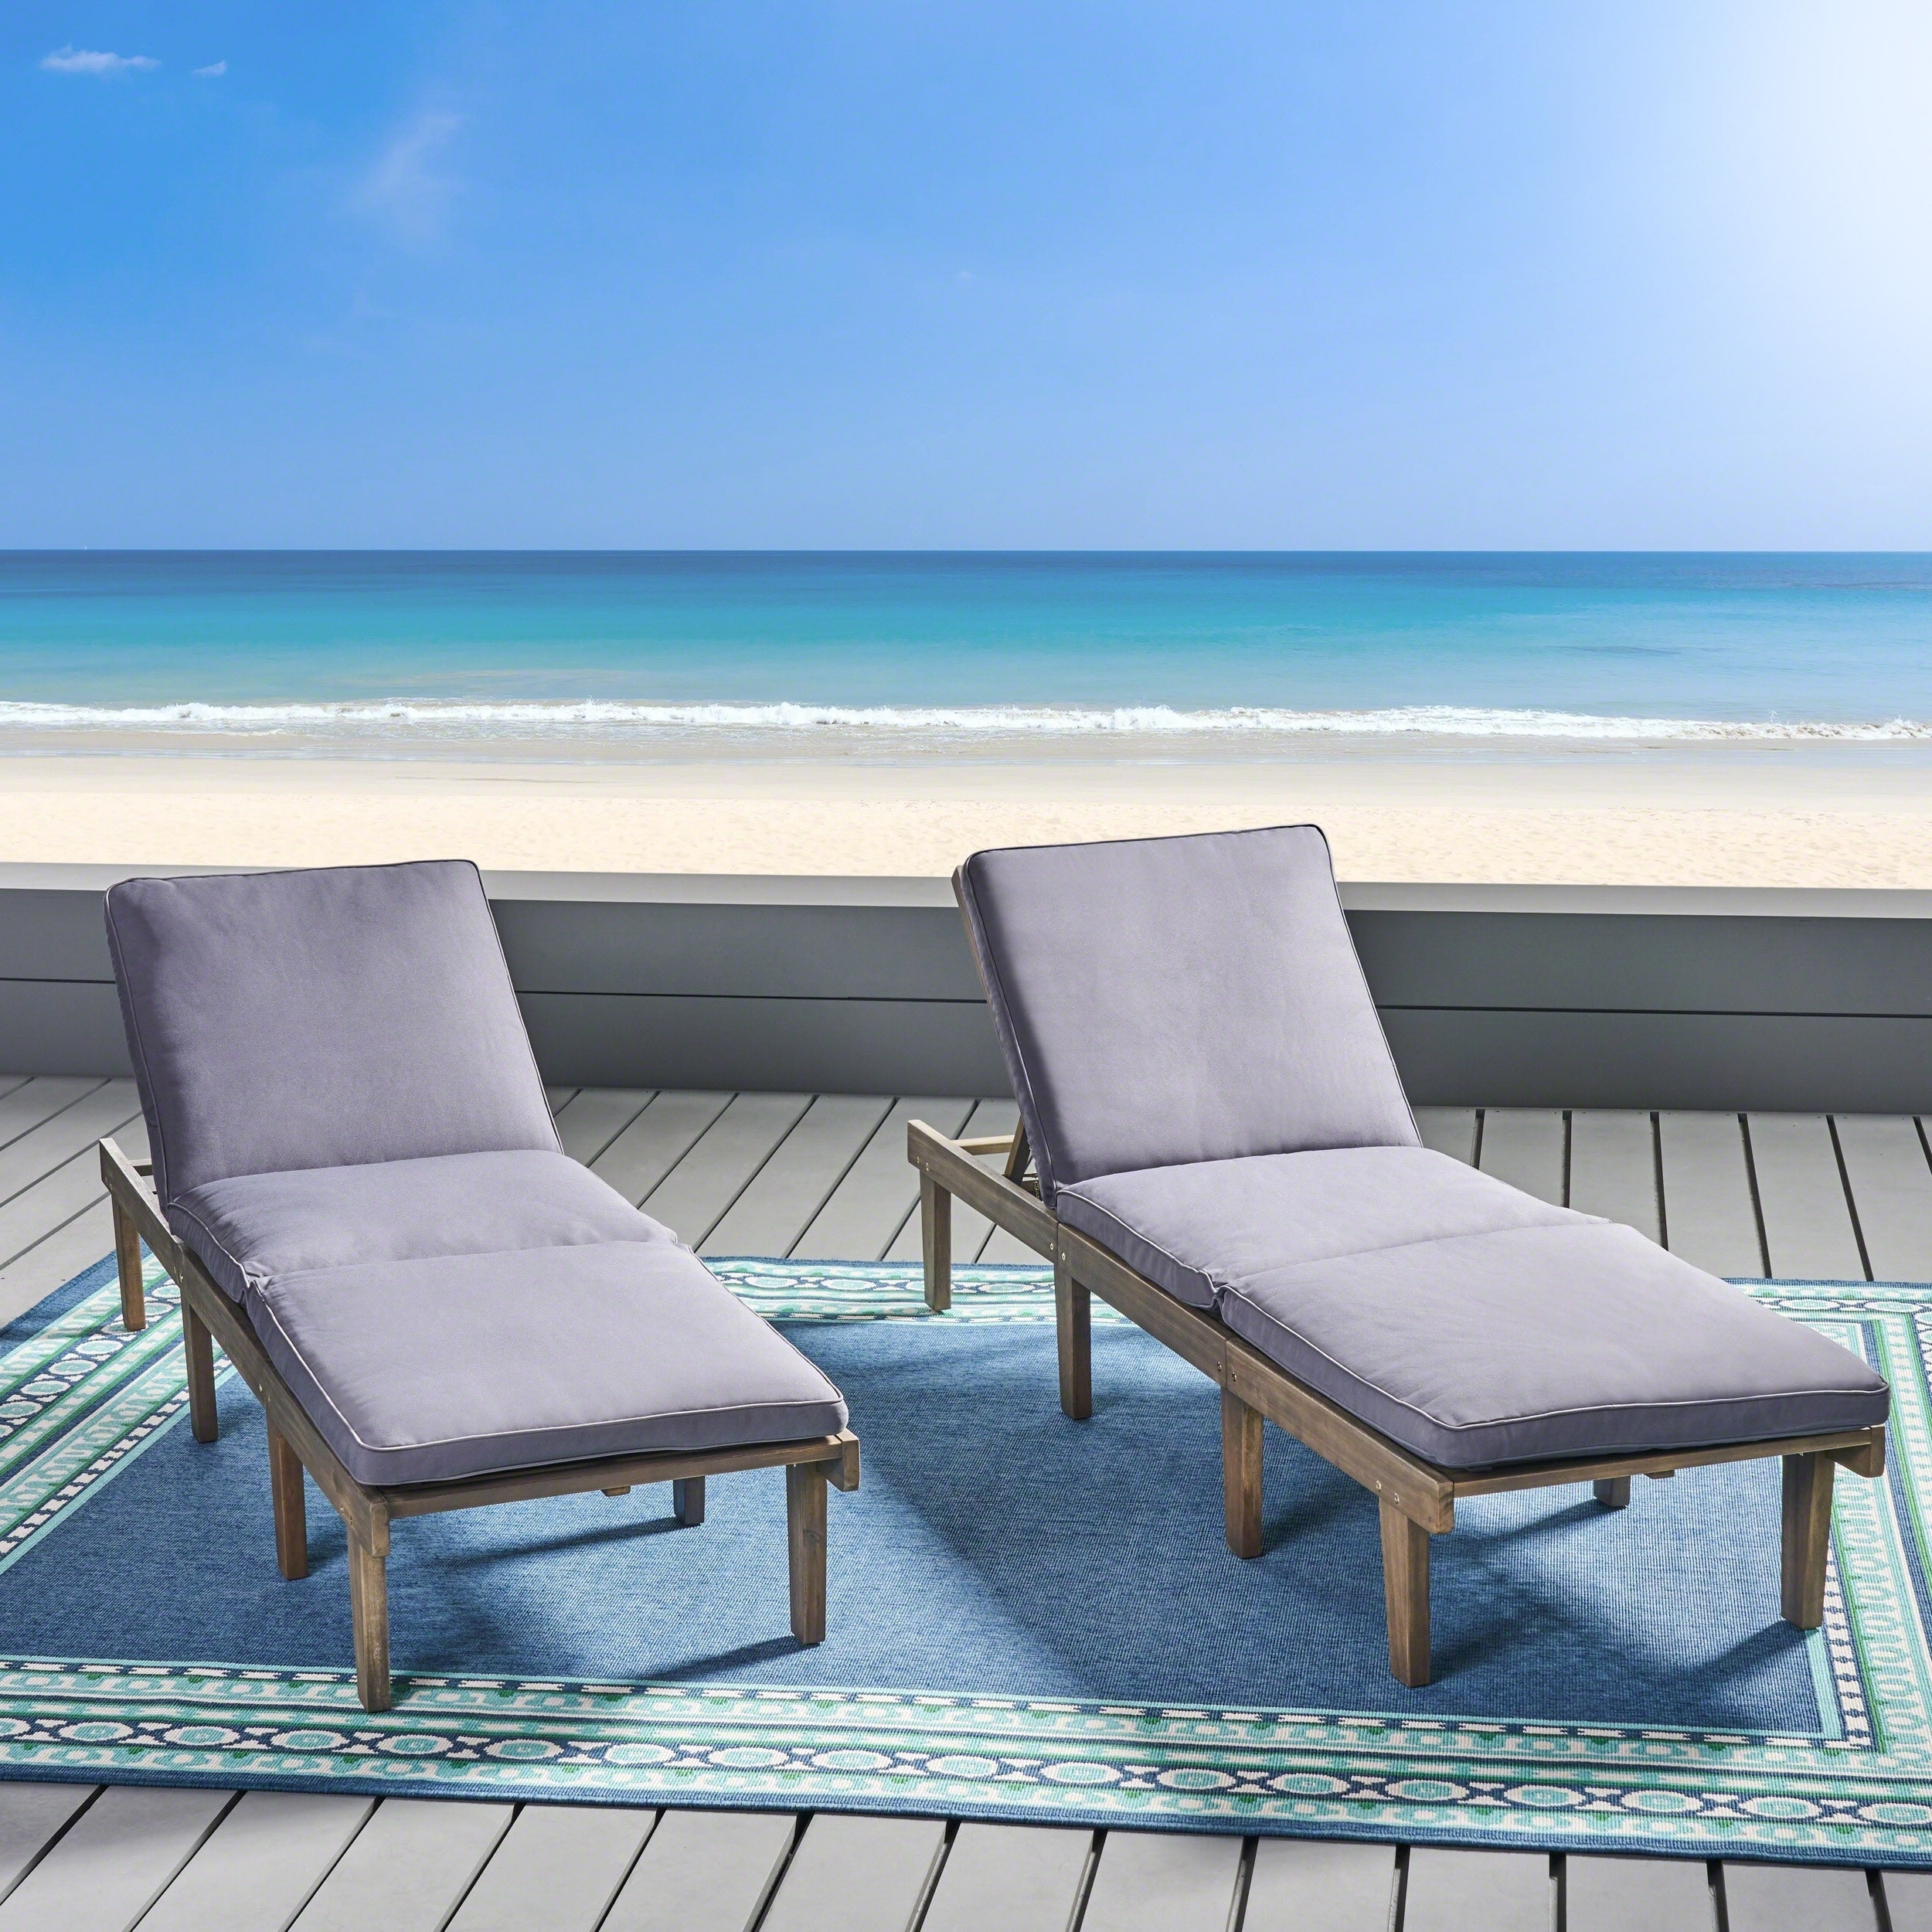 Most Recently Released Ariana Outdoor Acacia Wood Chaise Lounge With Cushion (set Of 2) Intended For Wood Blue And White Cushion Outdoor Chaise Lounge Chairs (View 2 of 25)